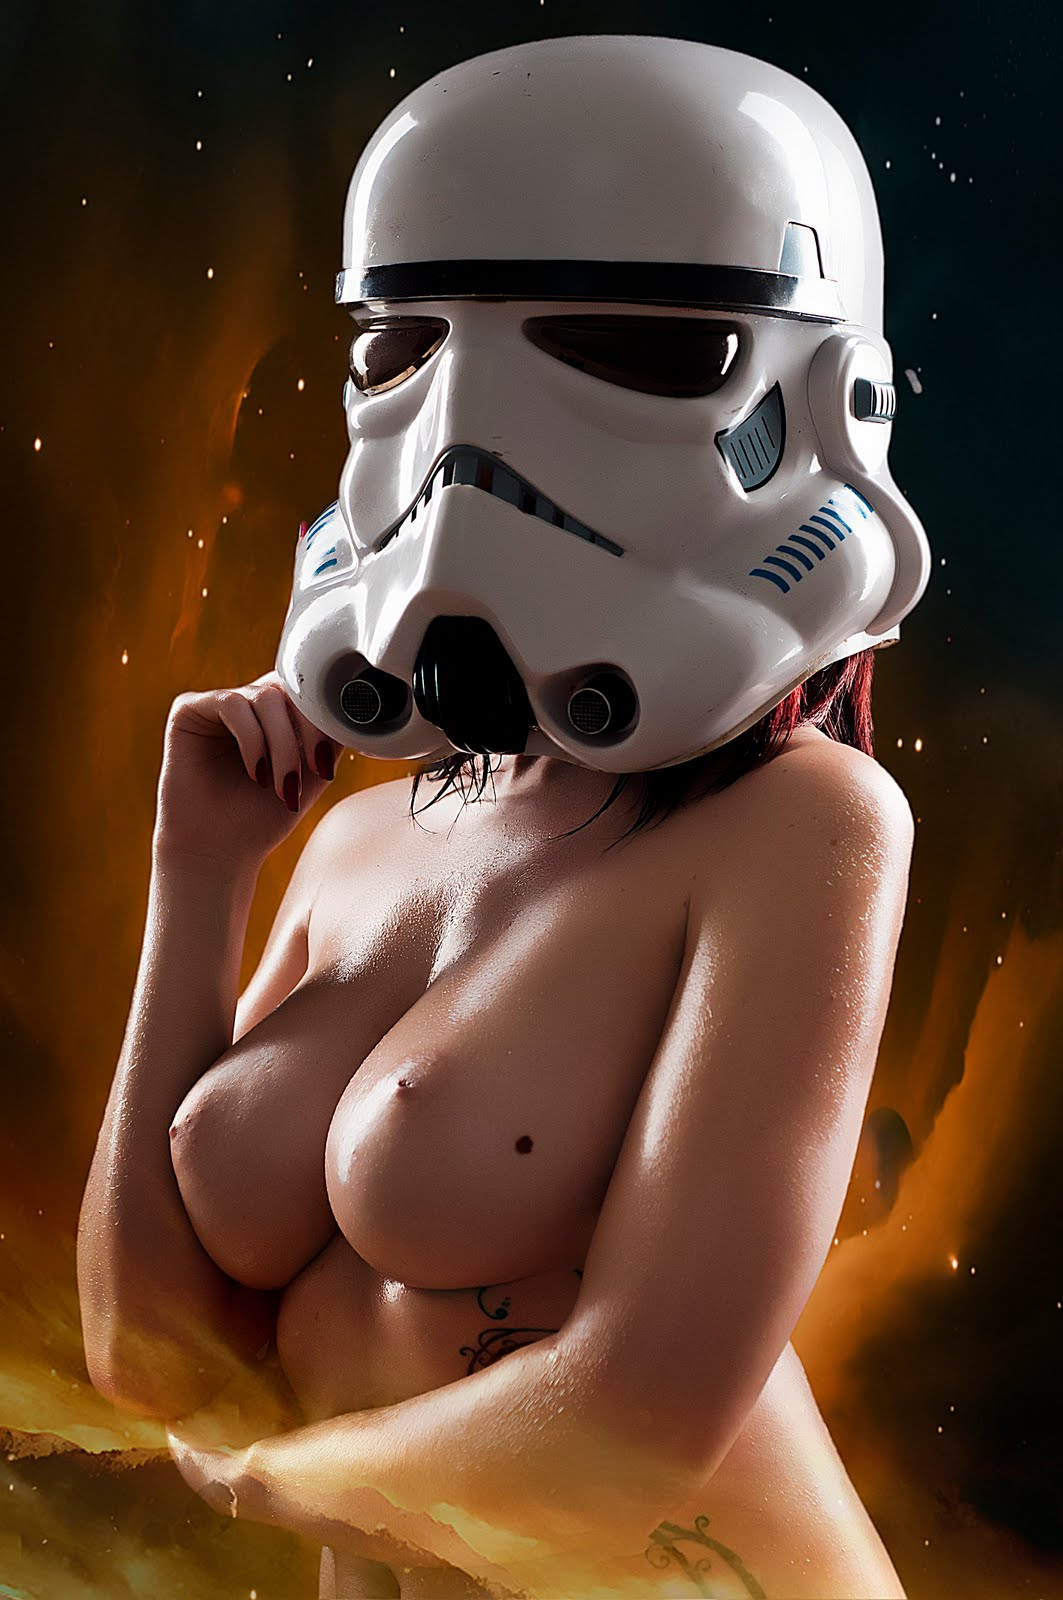 Star wars hot nude are